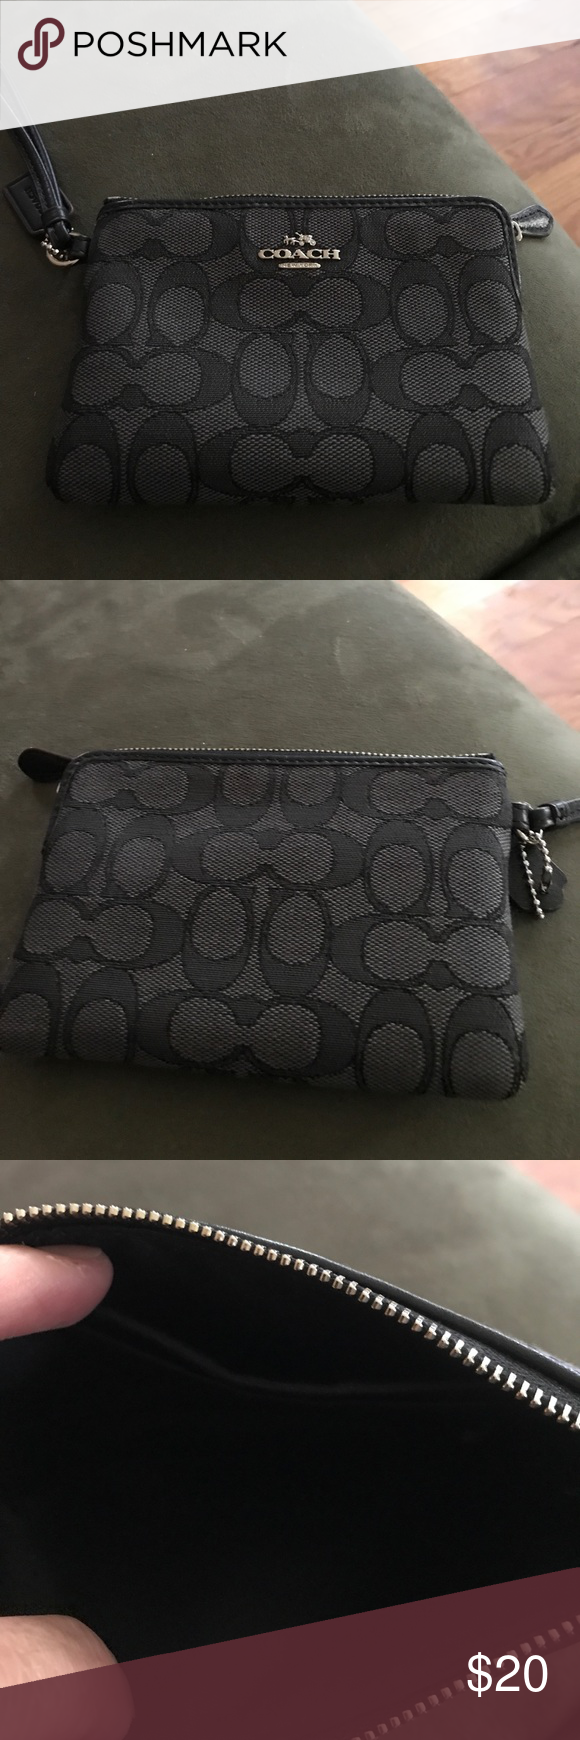 Black Coach Wristlet Black Coach Wristlet in excellent condition inside and out!! Needs a good home!! Coach Bags Clutches & Wristlets